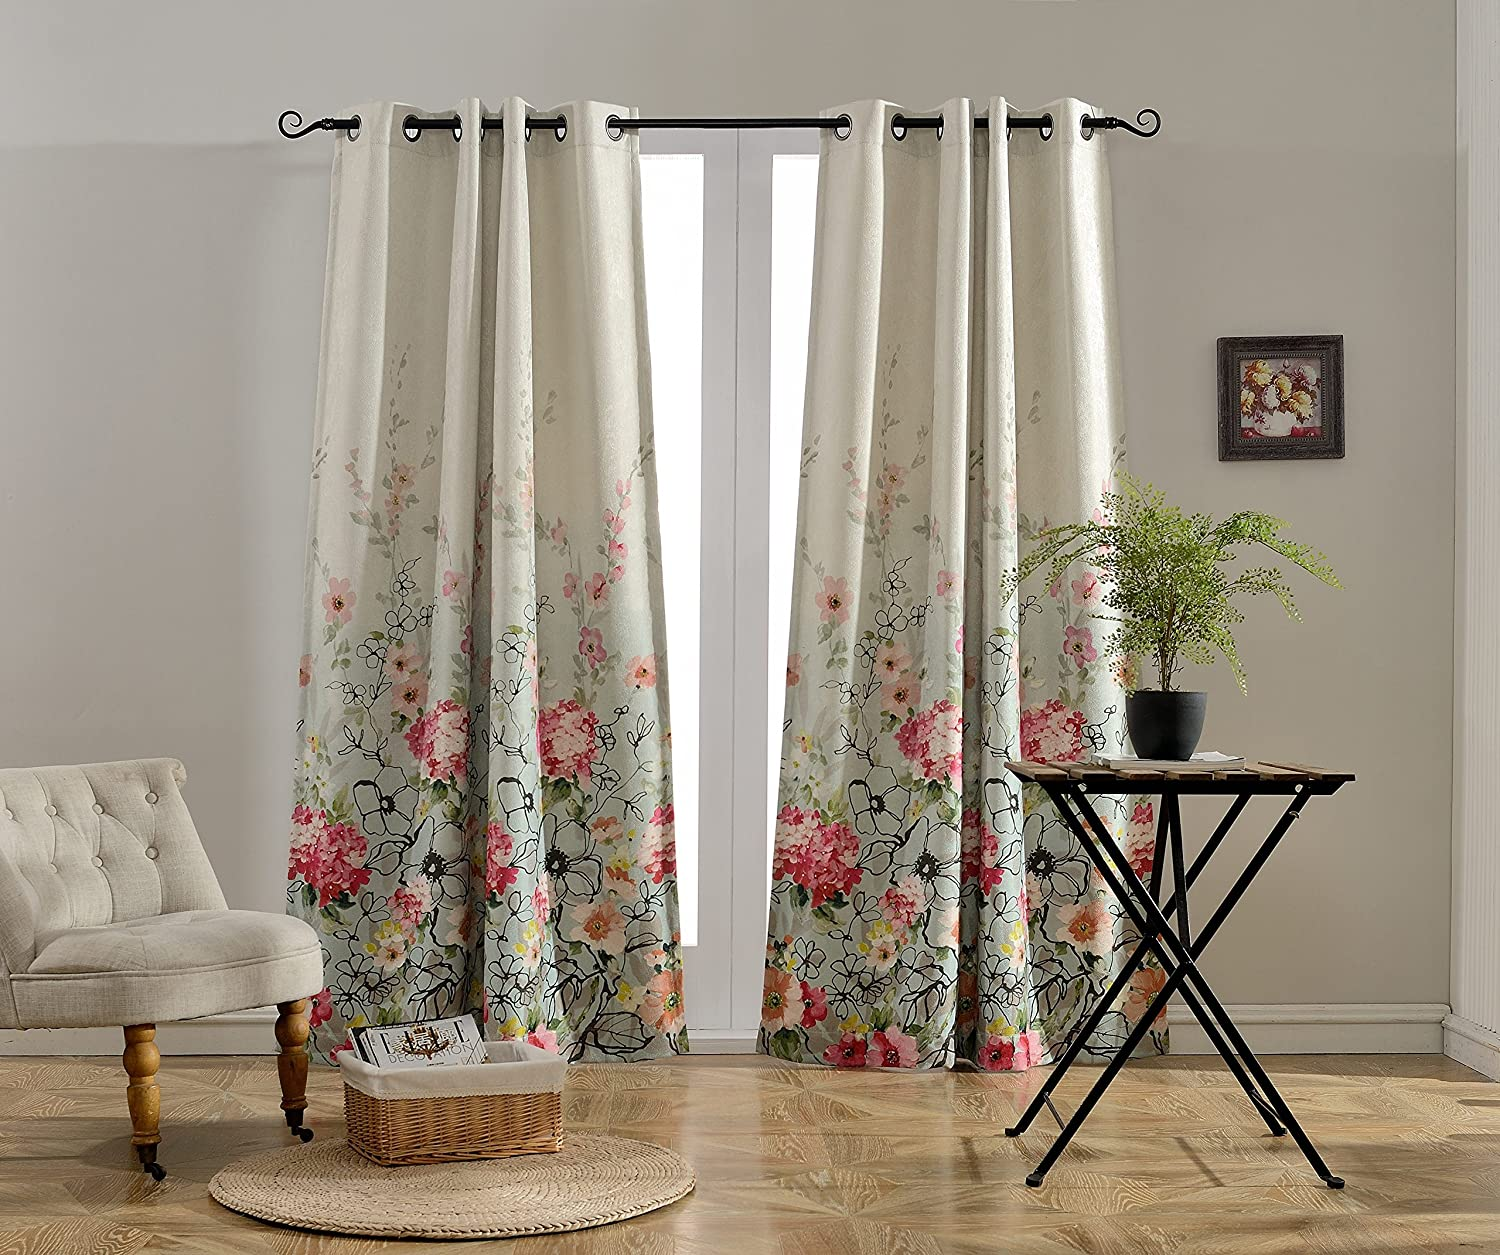 MYSKY HOME Floral Design Print Grommet top Thermal Insulated Faux Linen Room Darkening Curtains Red and Pink